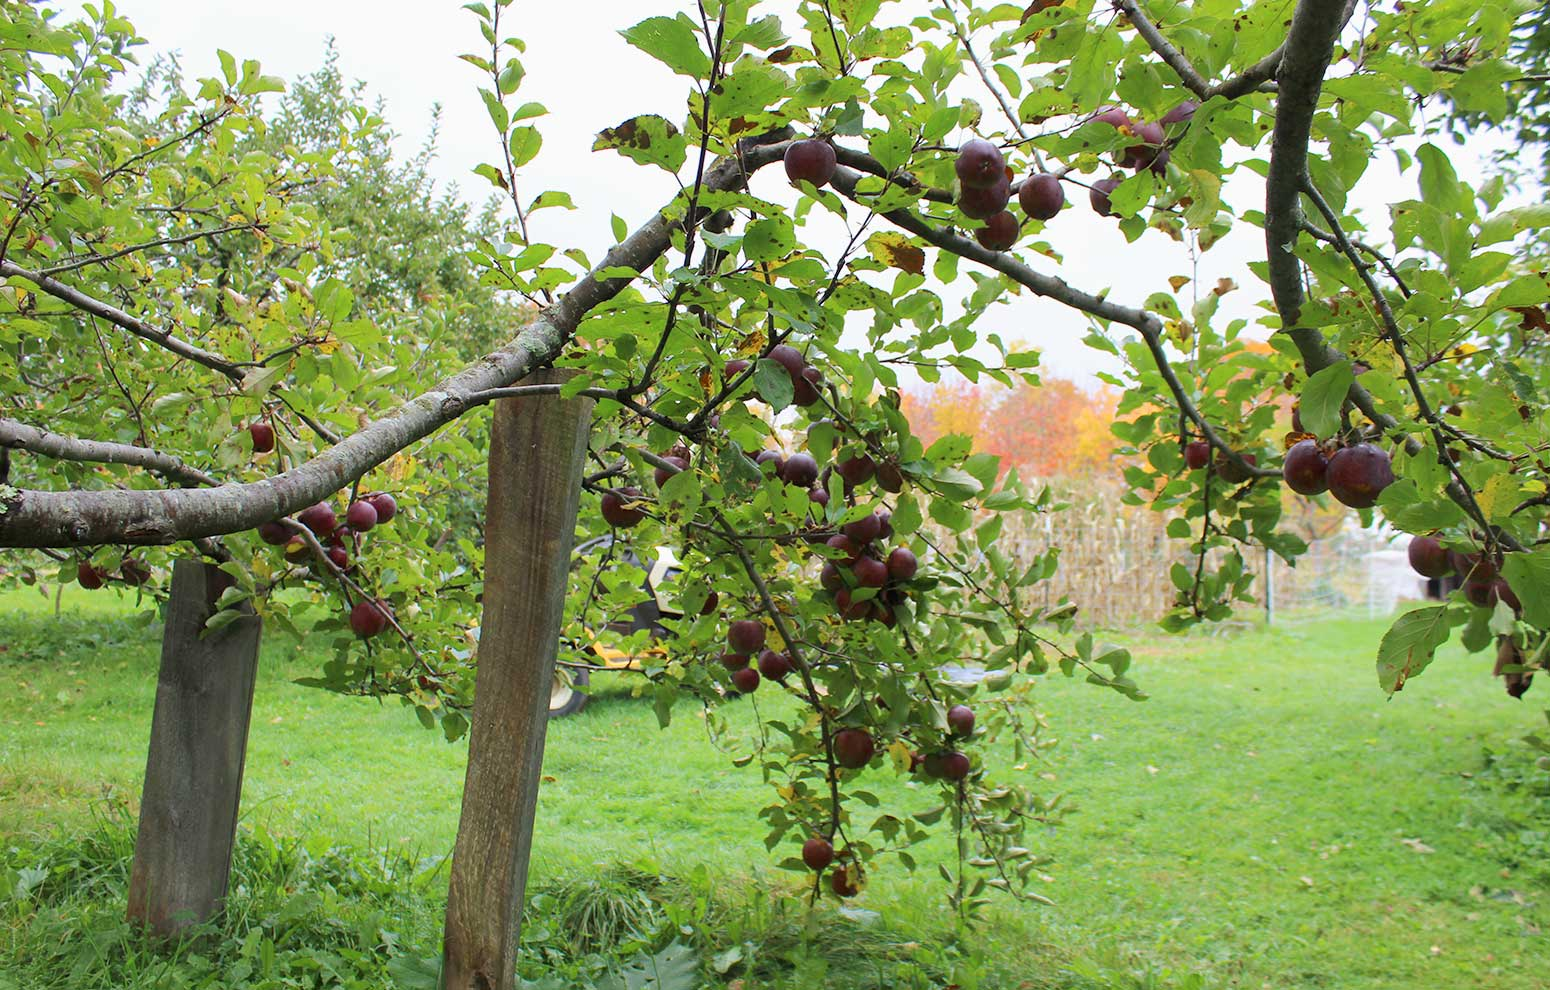 Apple trees with propped limbs heavy crop of Black Oxford apples